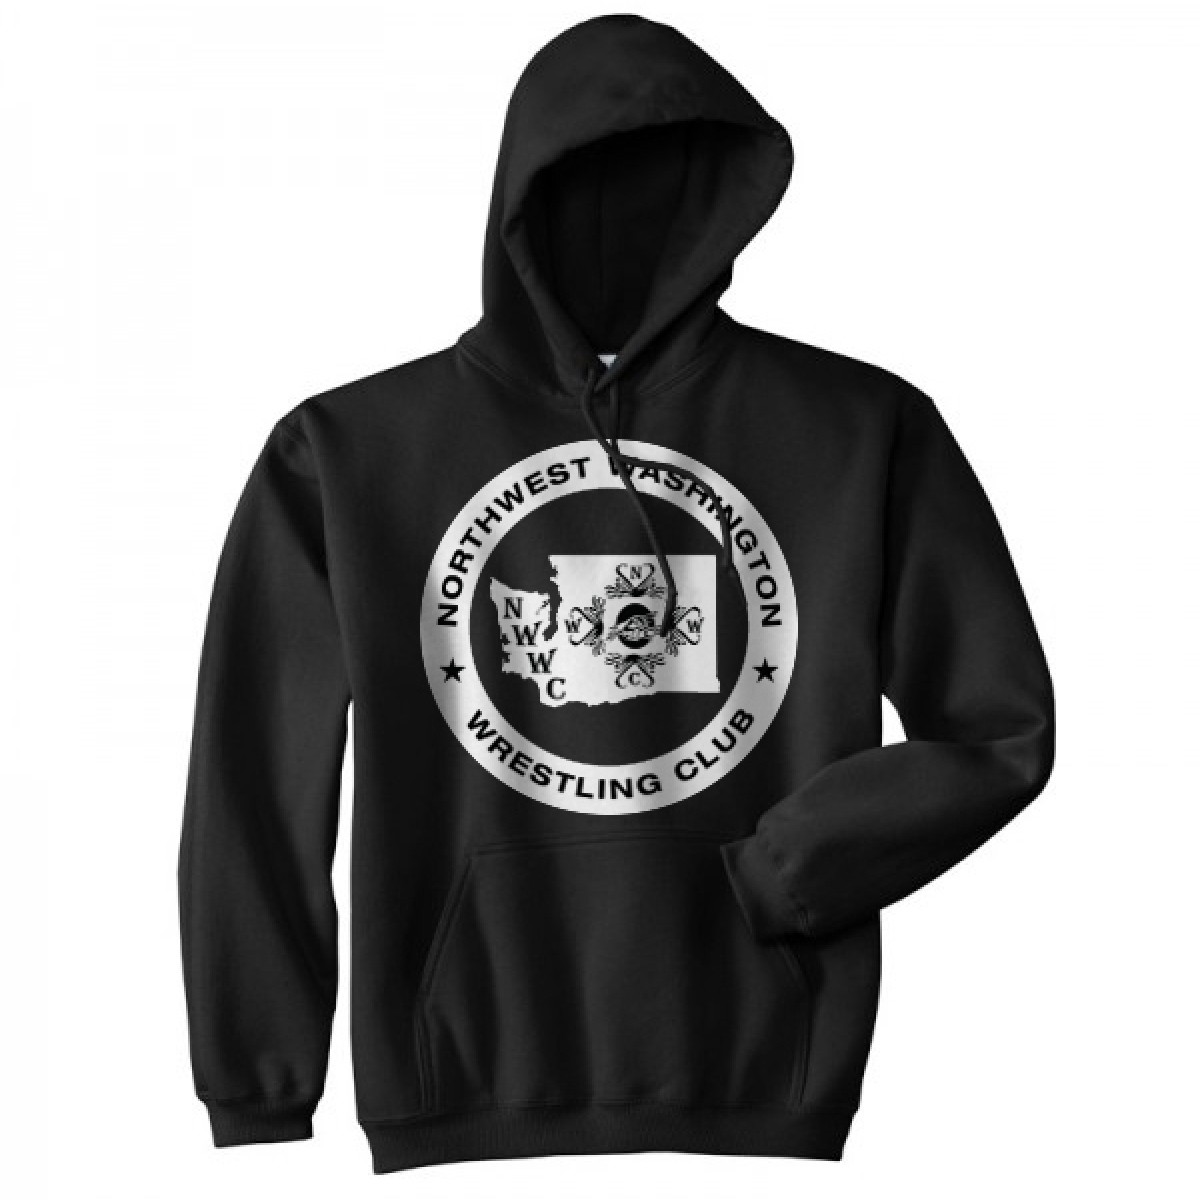 NWWC black hoodie with the logo in white